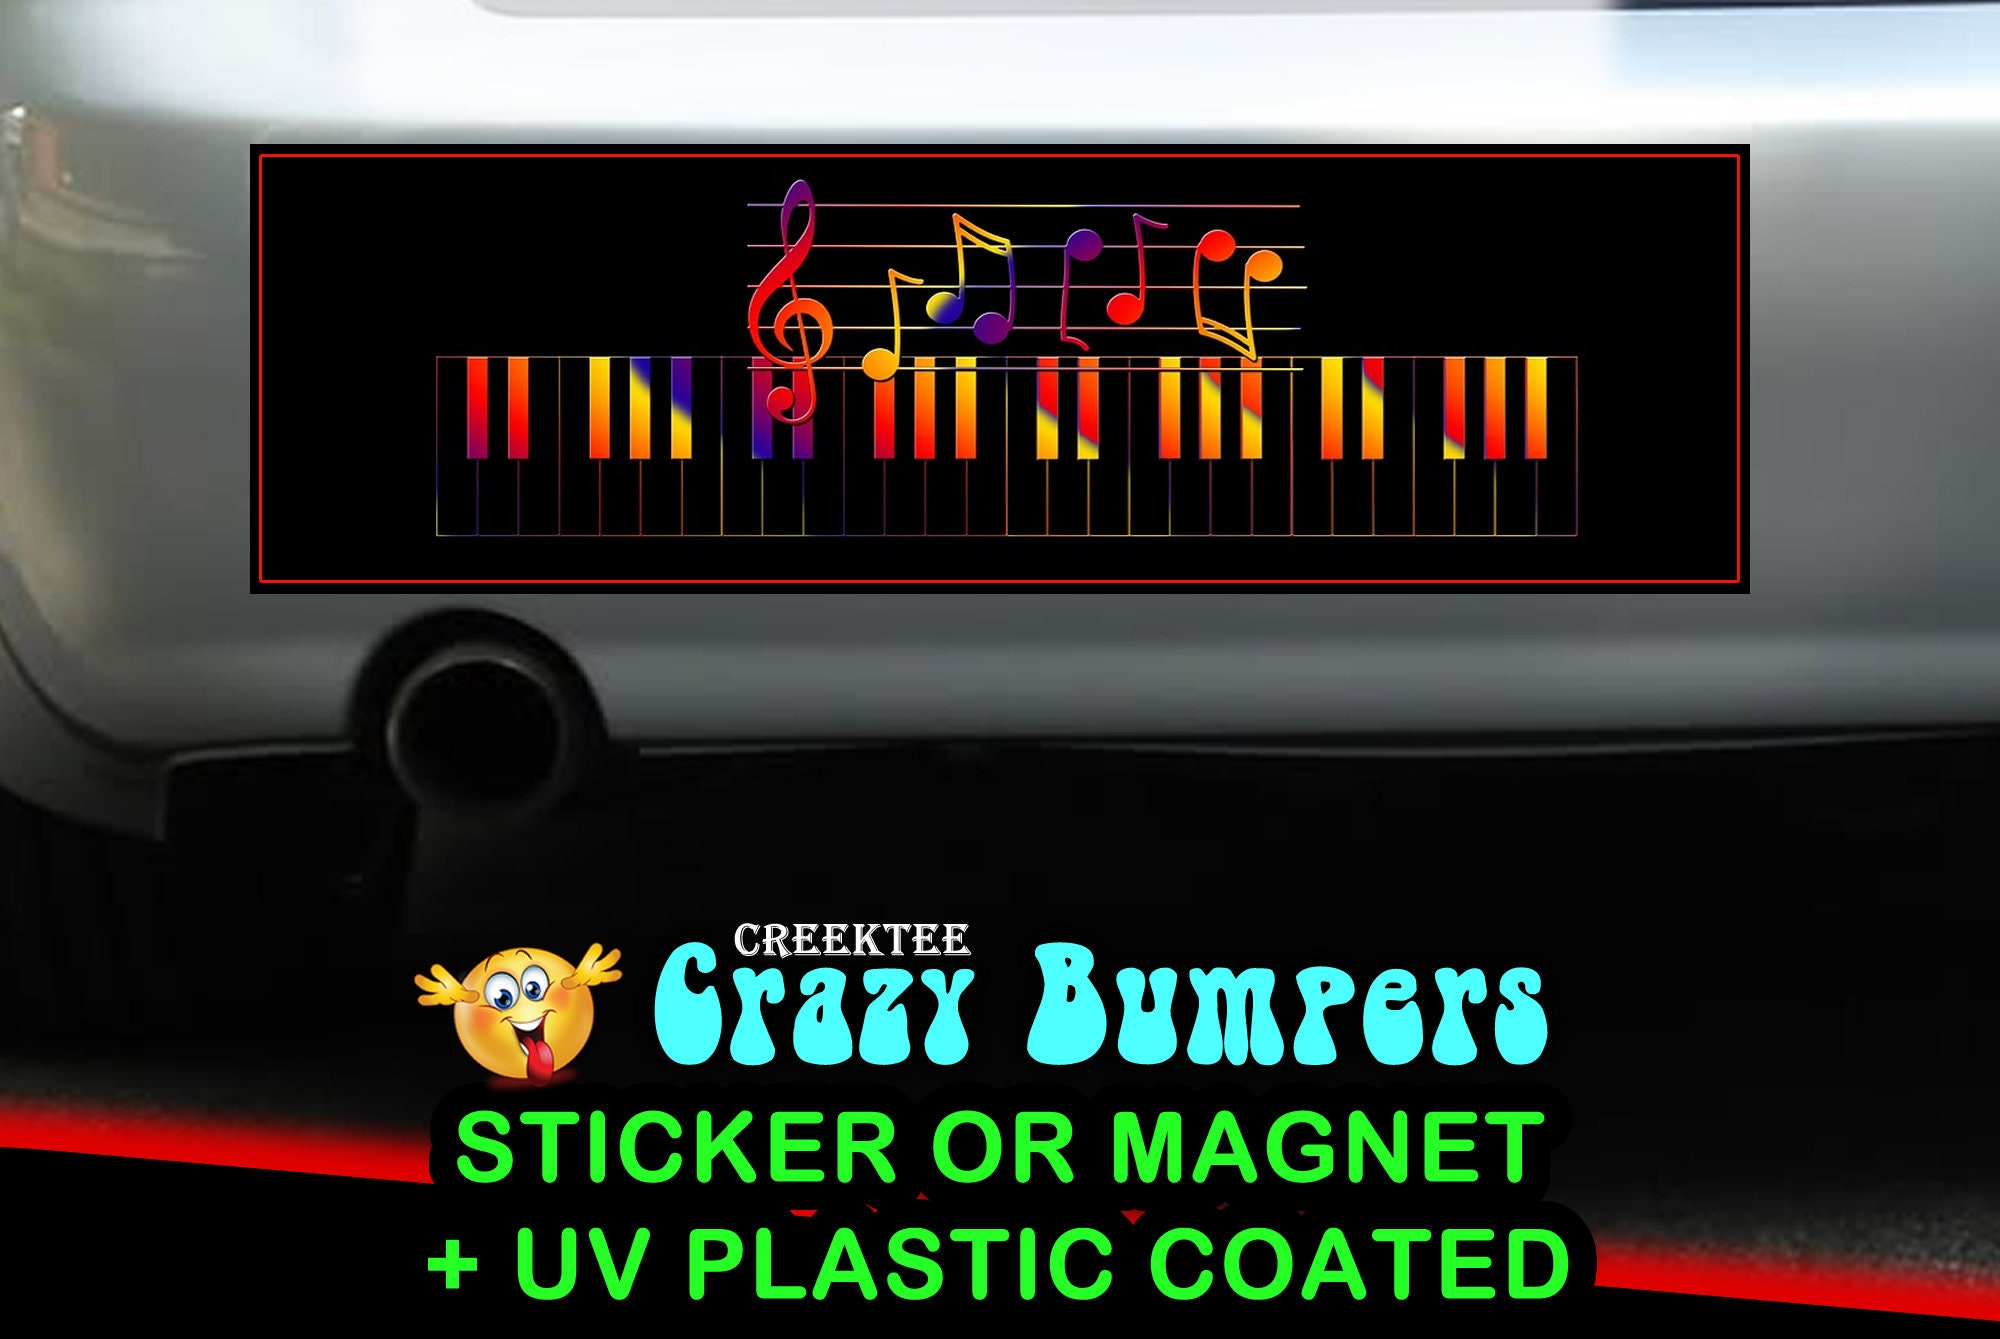 CAD$9.74 - Music Notes 10 x 3 Bumper Sticker or Magnetic Bumper Sticker Available